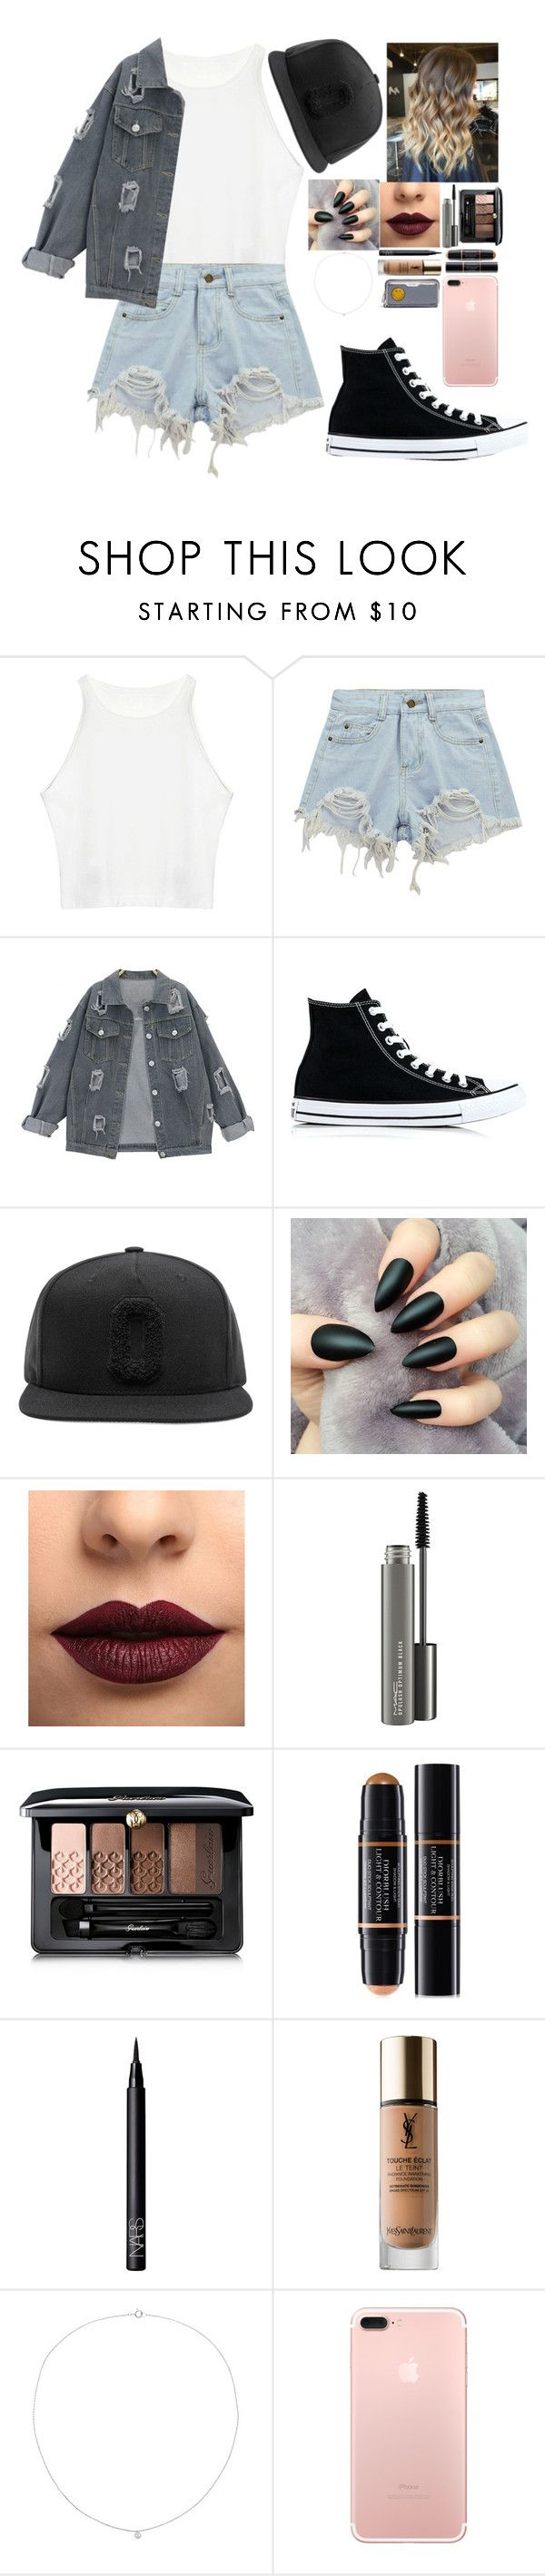 """that snapback look"" by danifashionblog ❤ liked on Polyvore featuring Chicnova Fashion, Converse, LASplash, MAC Cosmetics, Guerlain, Christian Dior, NARS Cosmetics, Yves Saint Laurent, Sole Society and Anya Hindmarch"